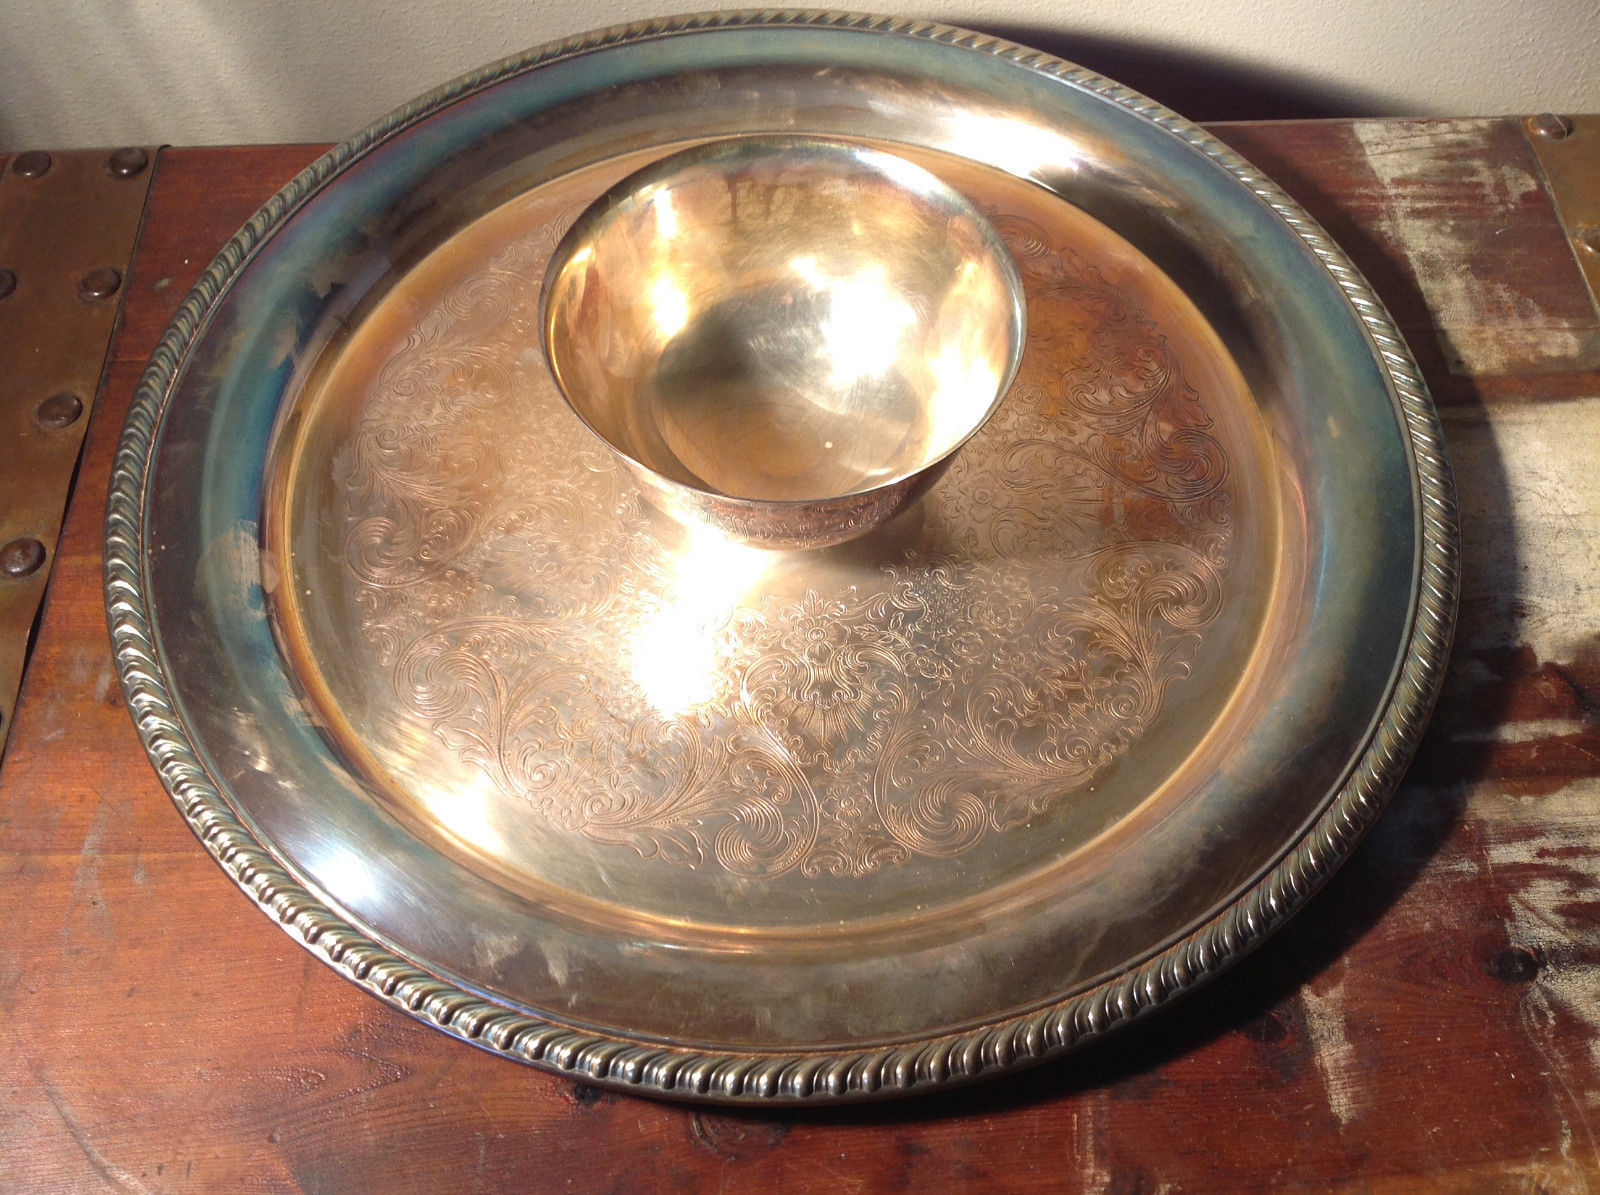 Vintage Metal Service Platter Tray with Small Bowl in Center Etched Metal Relief